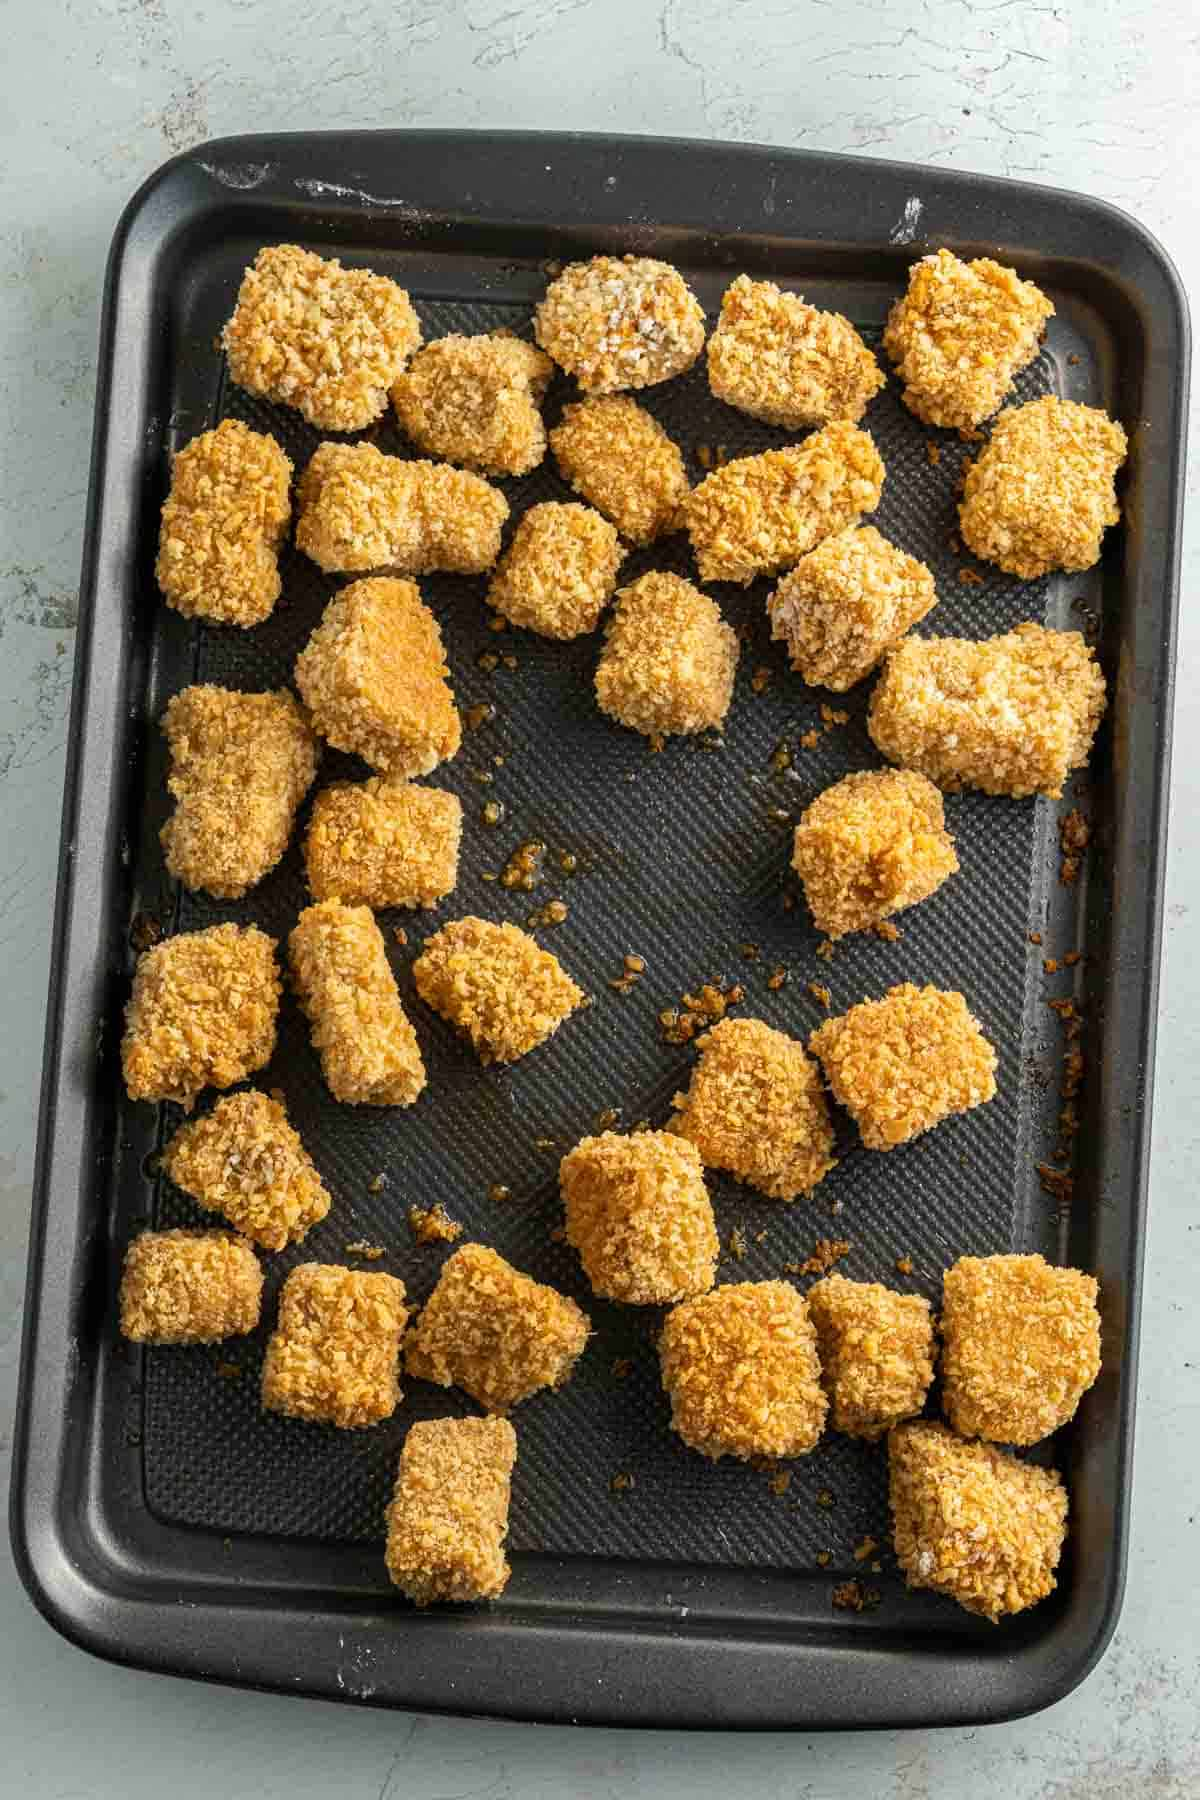 Baked tofu nuggets on a baking pan.